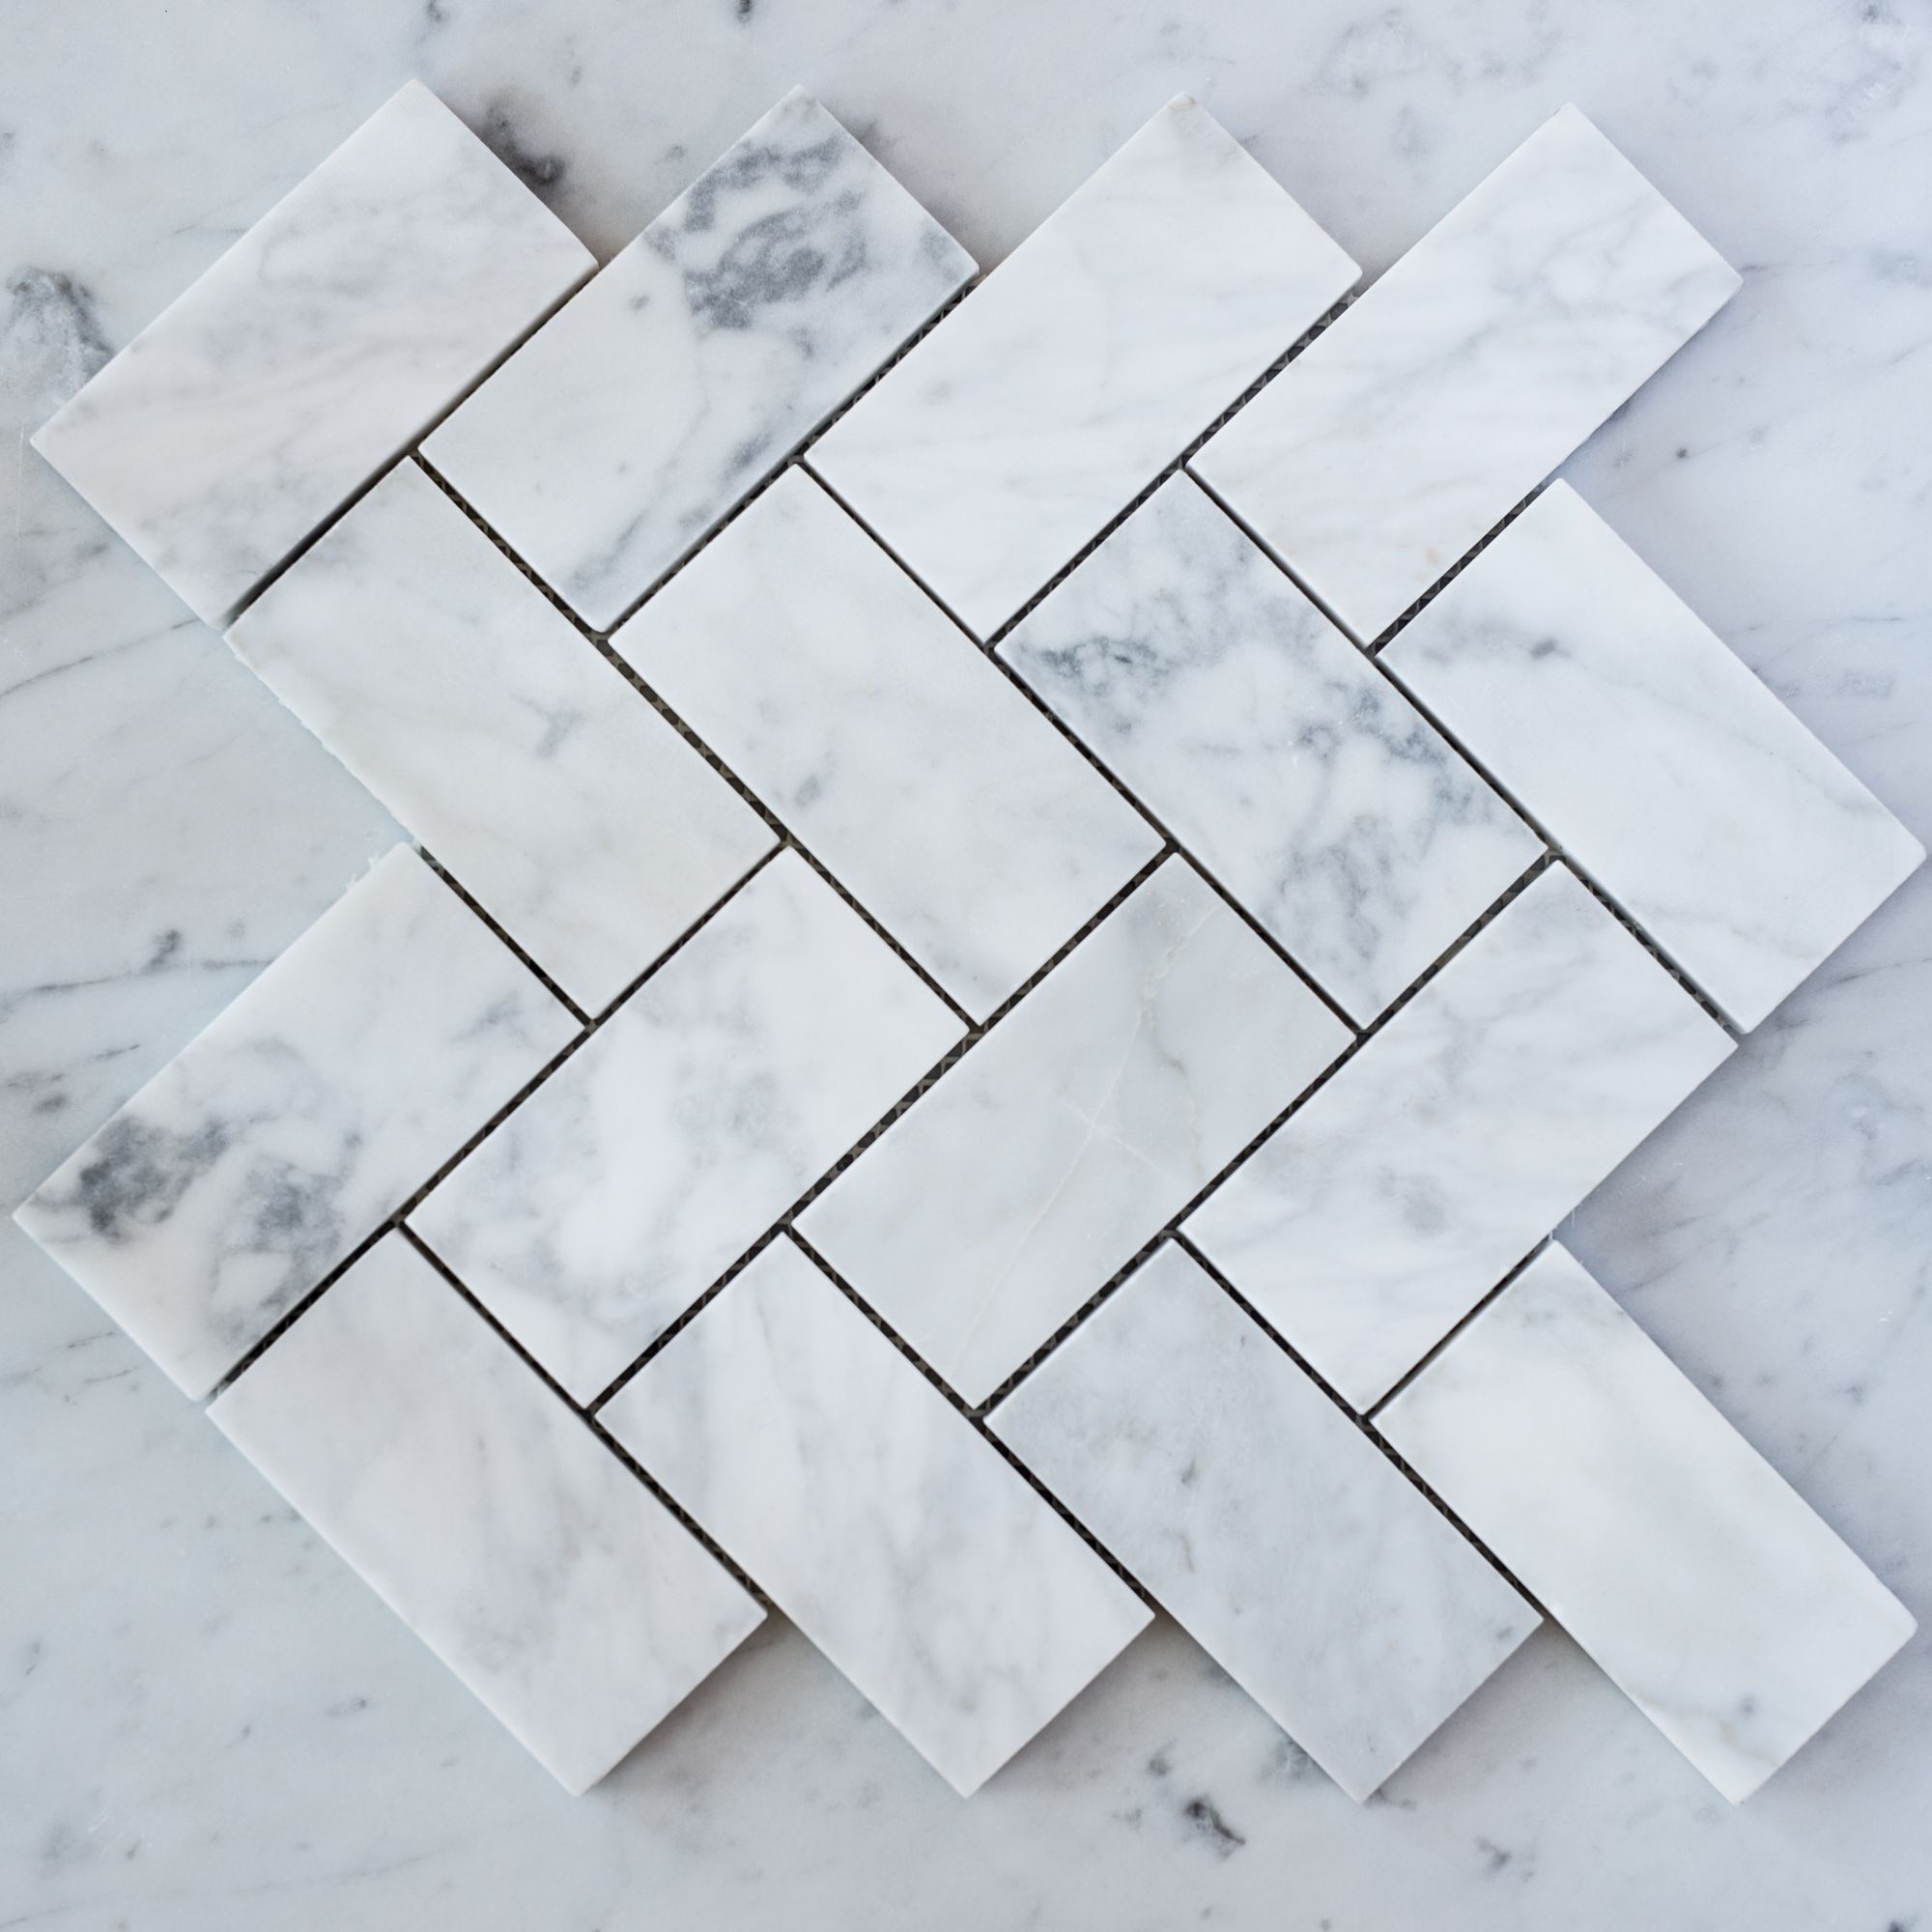 Herringbone is the first known parquet pattern and originated from ...